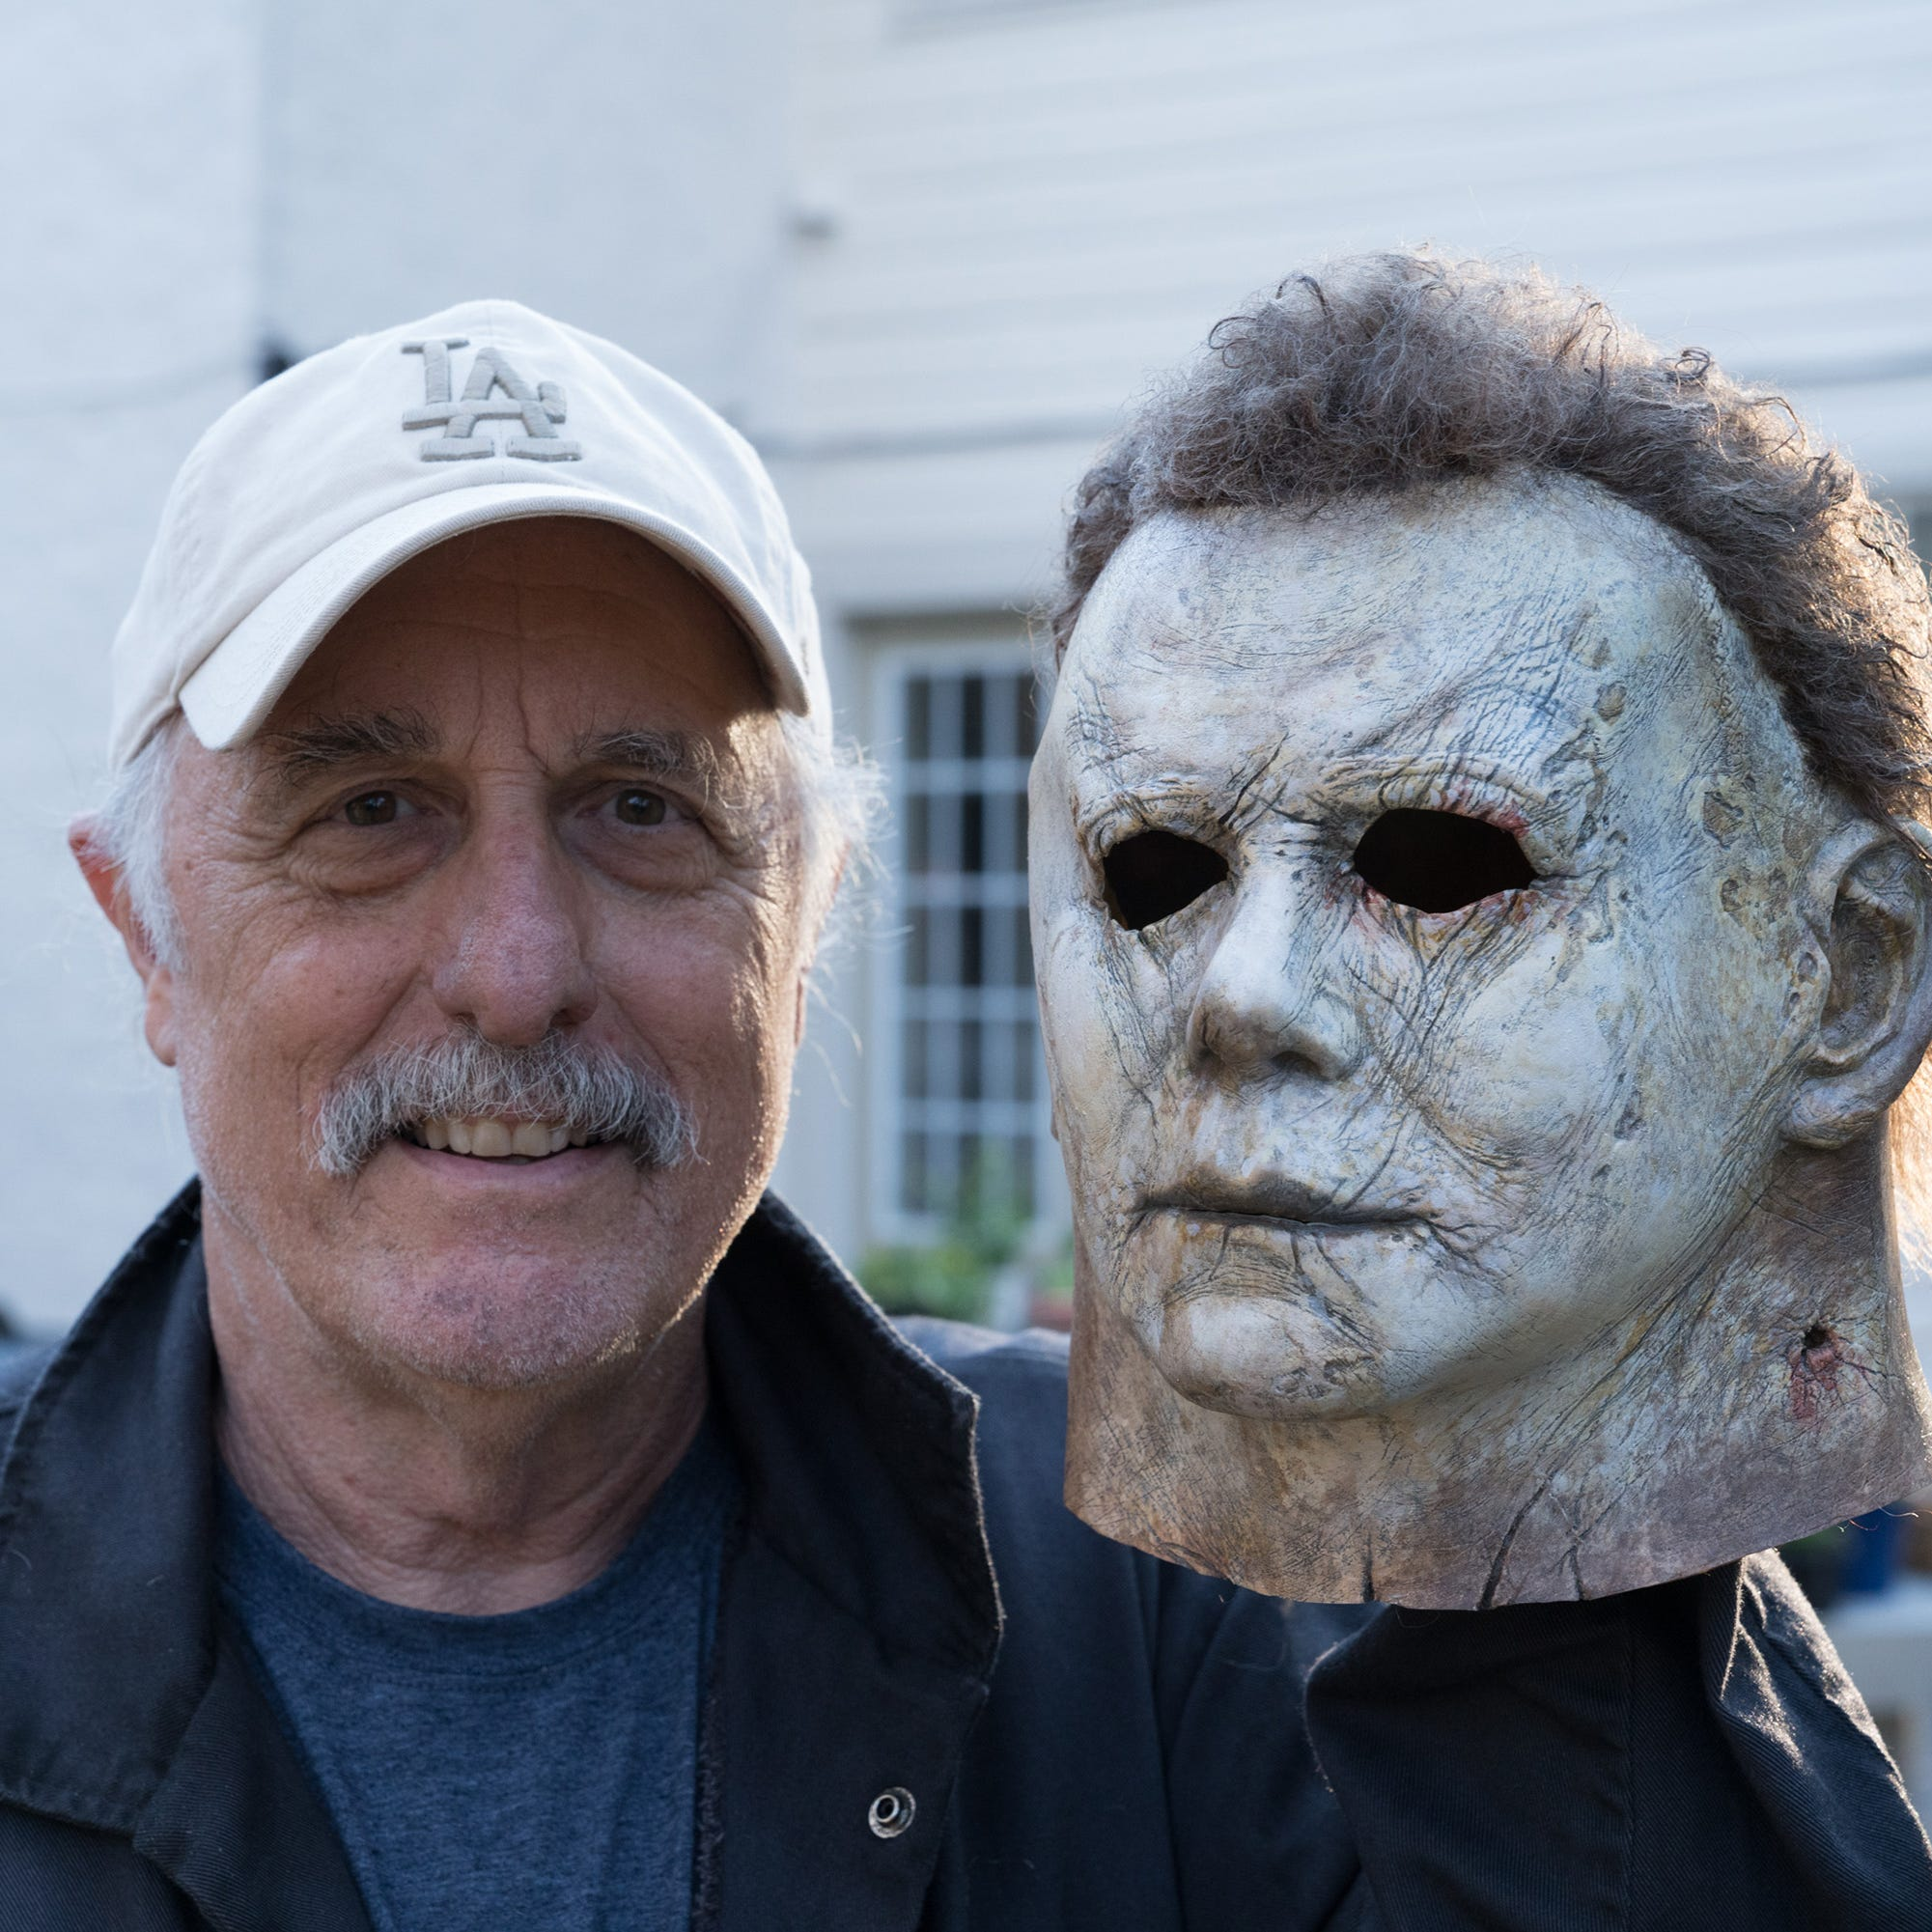 Nick Castle, the original Michael Myers, puts on his 'Halloween' mask once more